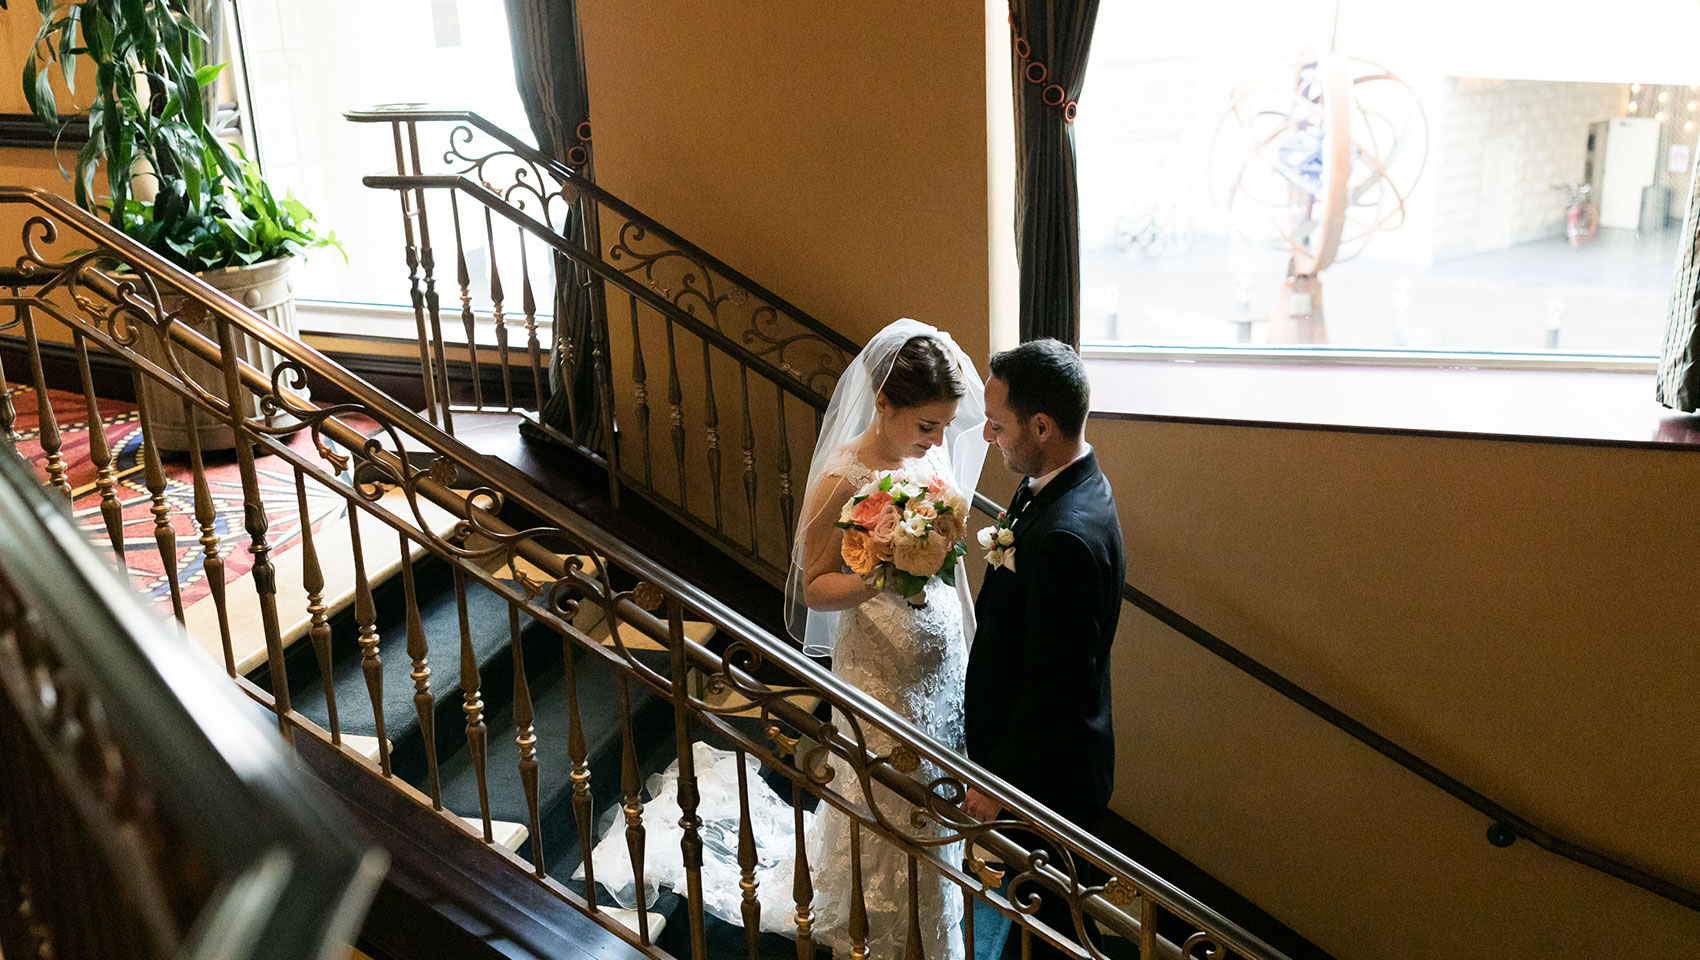 Bride and Groom on staircase in wedding attire